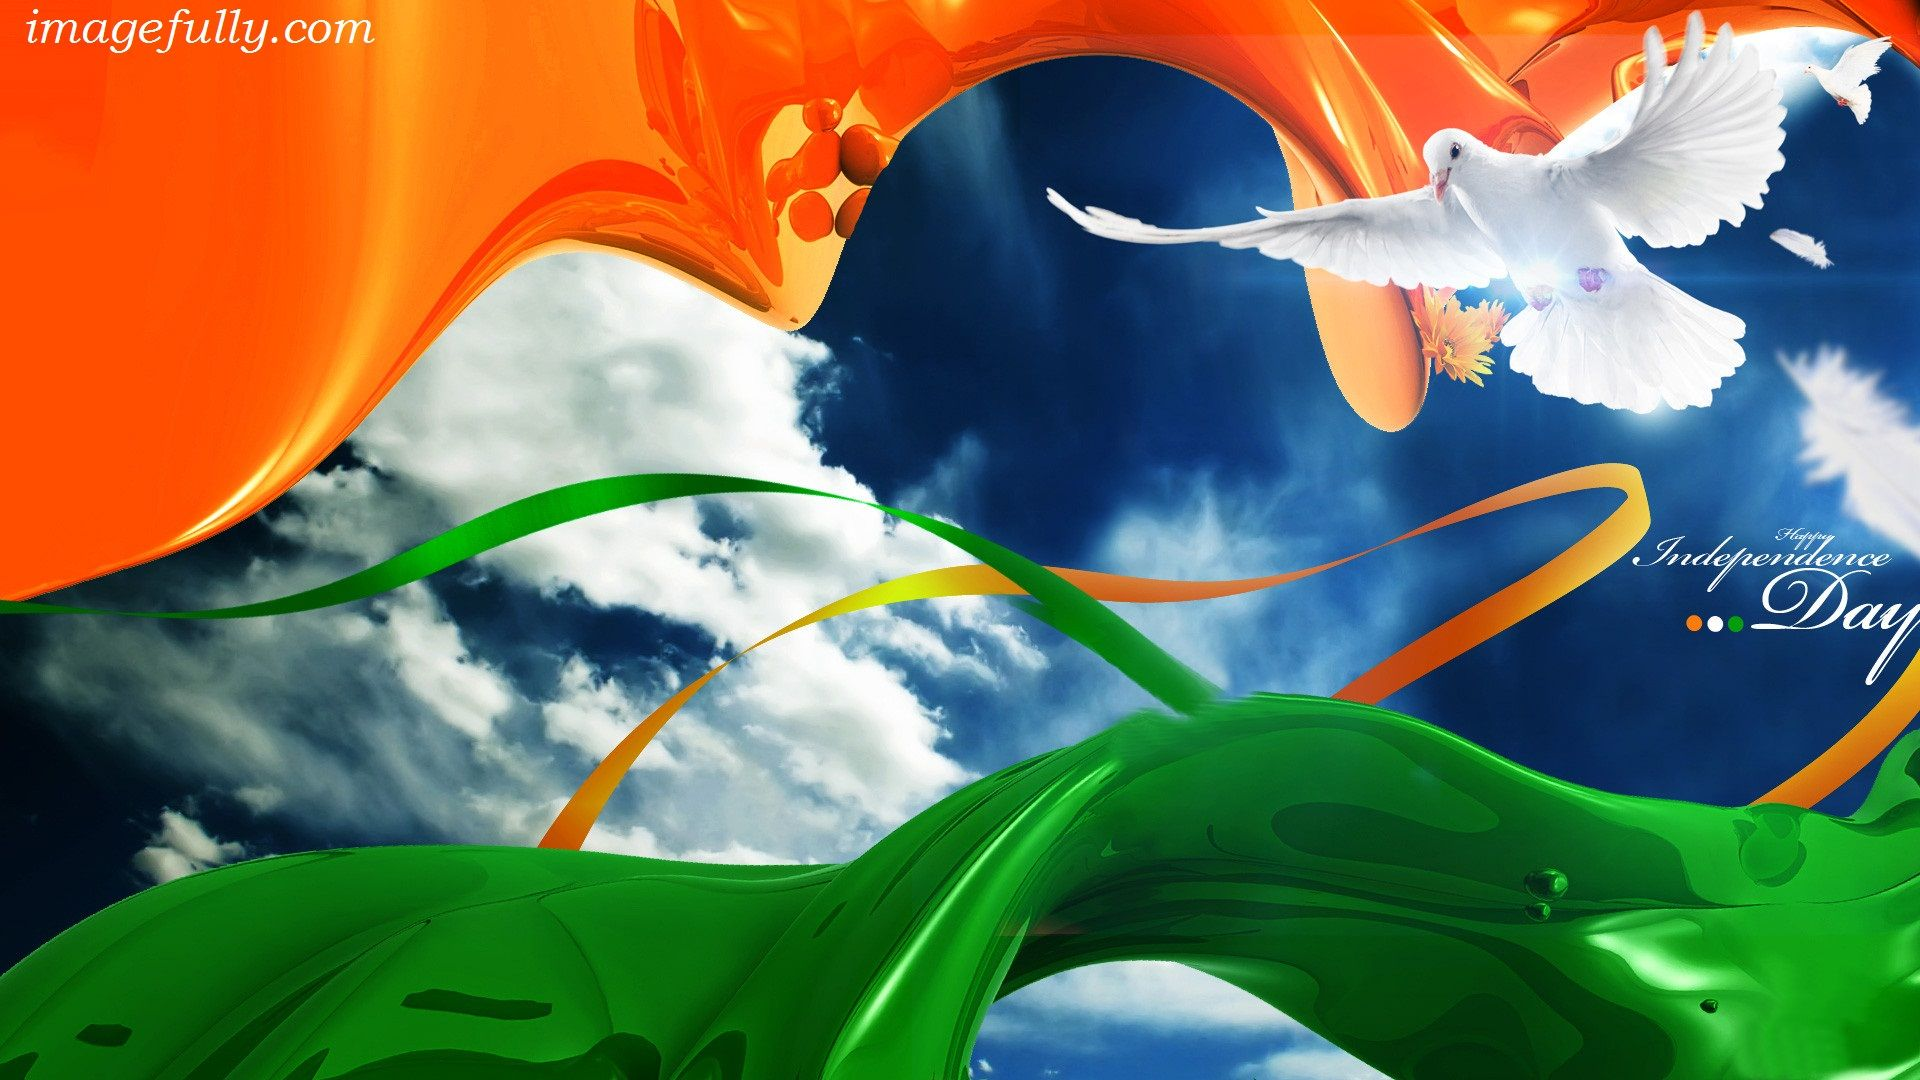 Beautiful Indian Flag Color Picture On Happy Independence Day Share On Facebook Indian Flag Wallpaper Independence Day Hd Wallpaper Independence Day Wallpaper